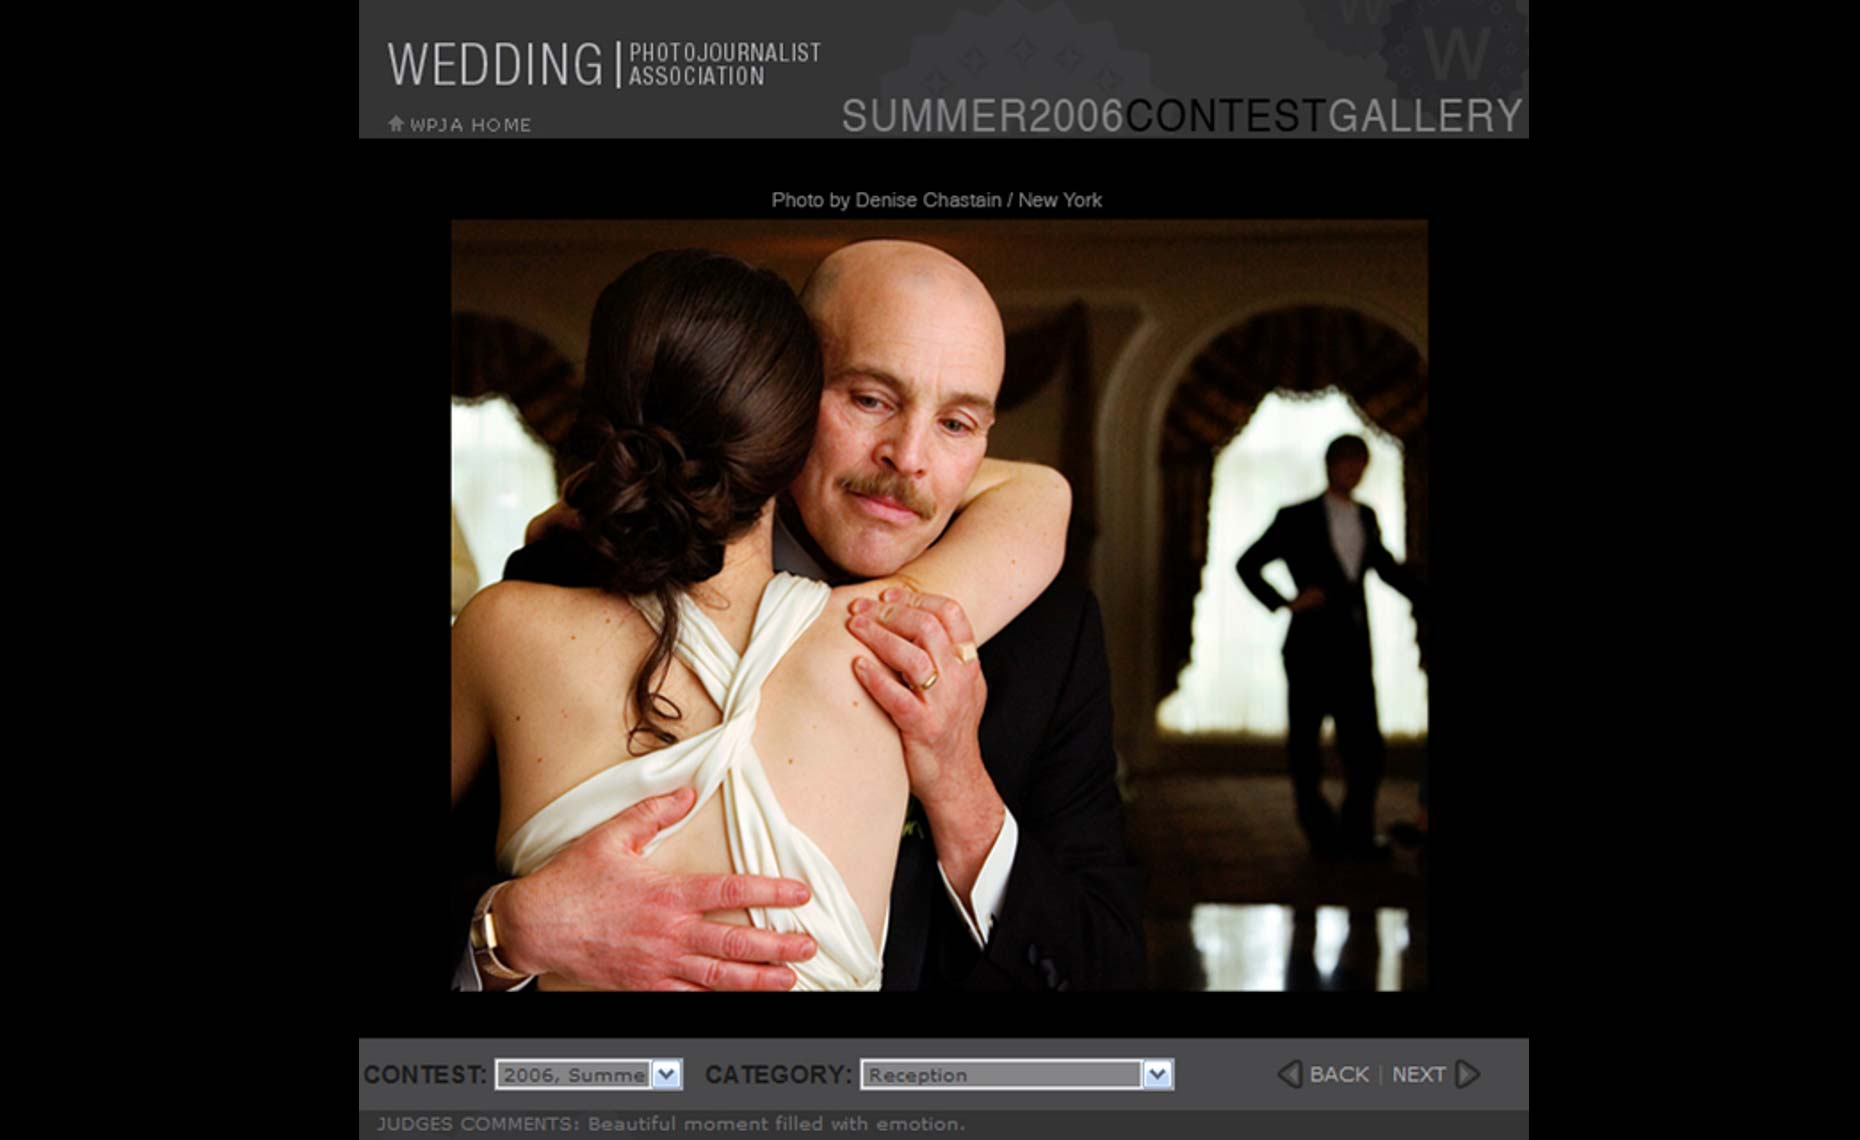 The Wedding Photojournalist Association - Modern Wedding Photography by Denise Chastain